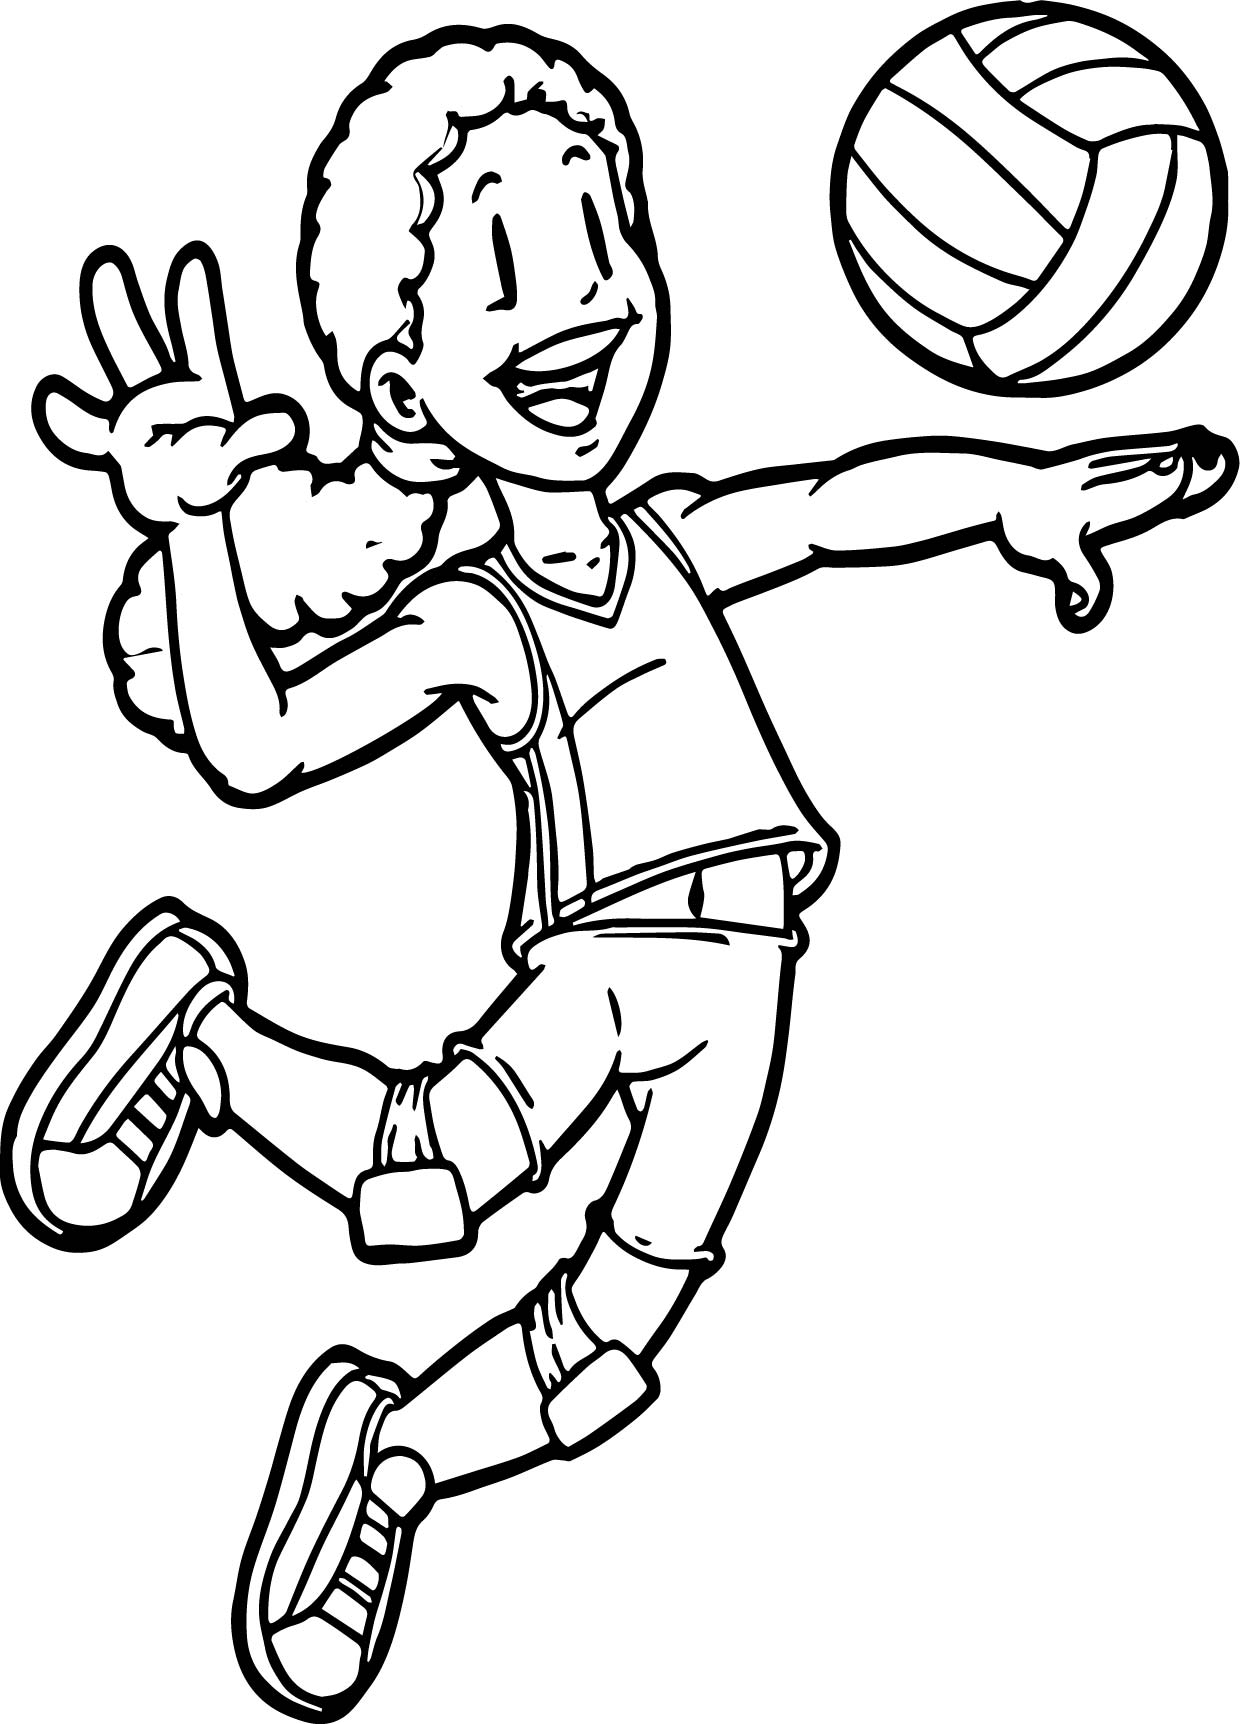 1240x1724 Volleyball Coloring Pages Kids Playing Sports